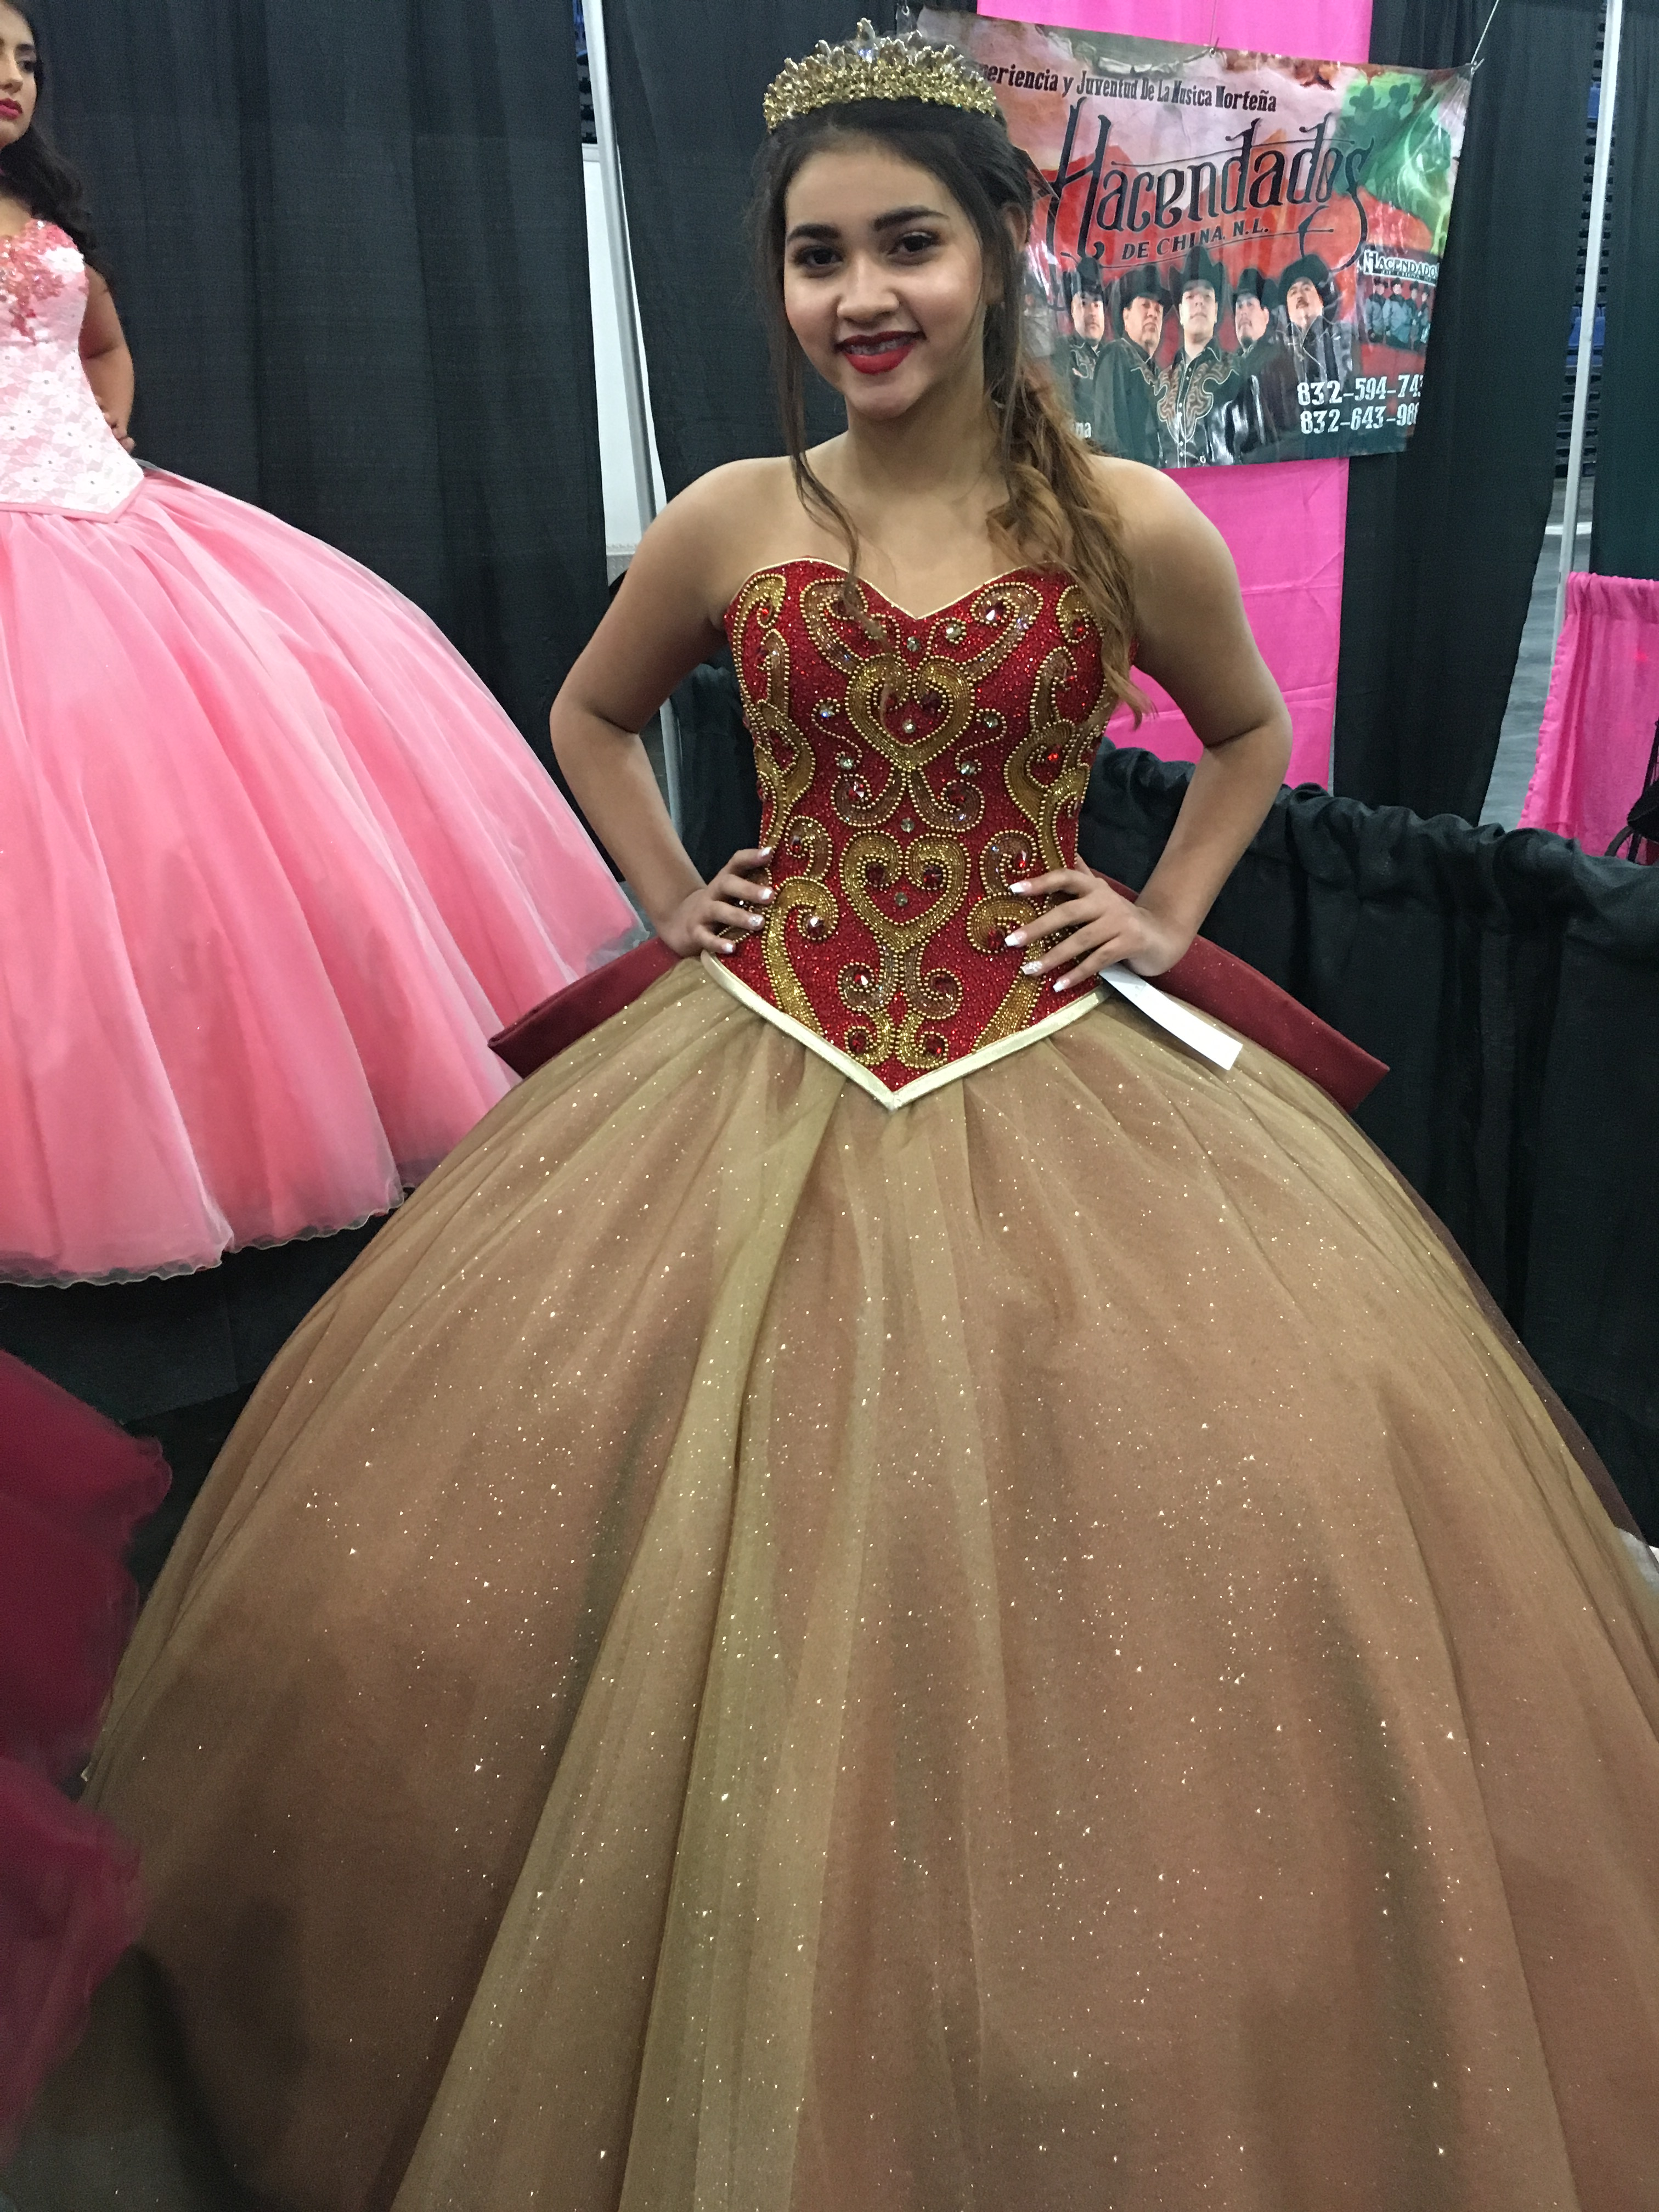 06f7e8d03 While there are online retailers that offer simple quinceañera dresses for  a few hundred dollars